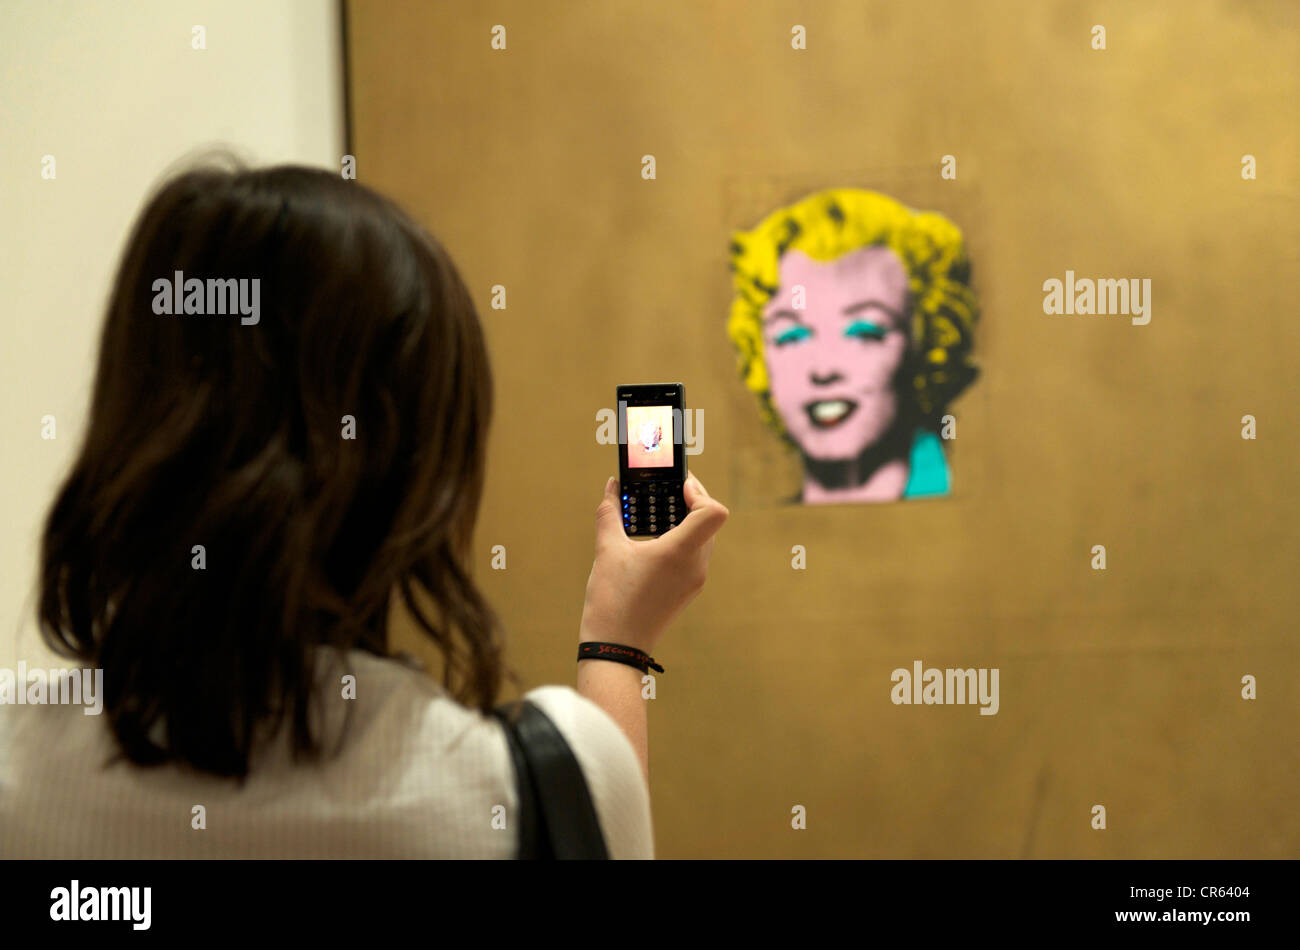 Gold Marilyn Monroe Stock Photos & Gold Marilyn Monroe Stock Images ...